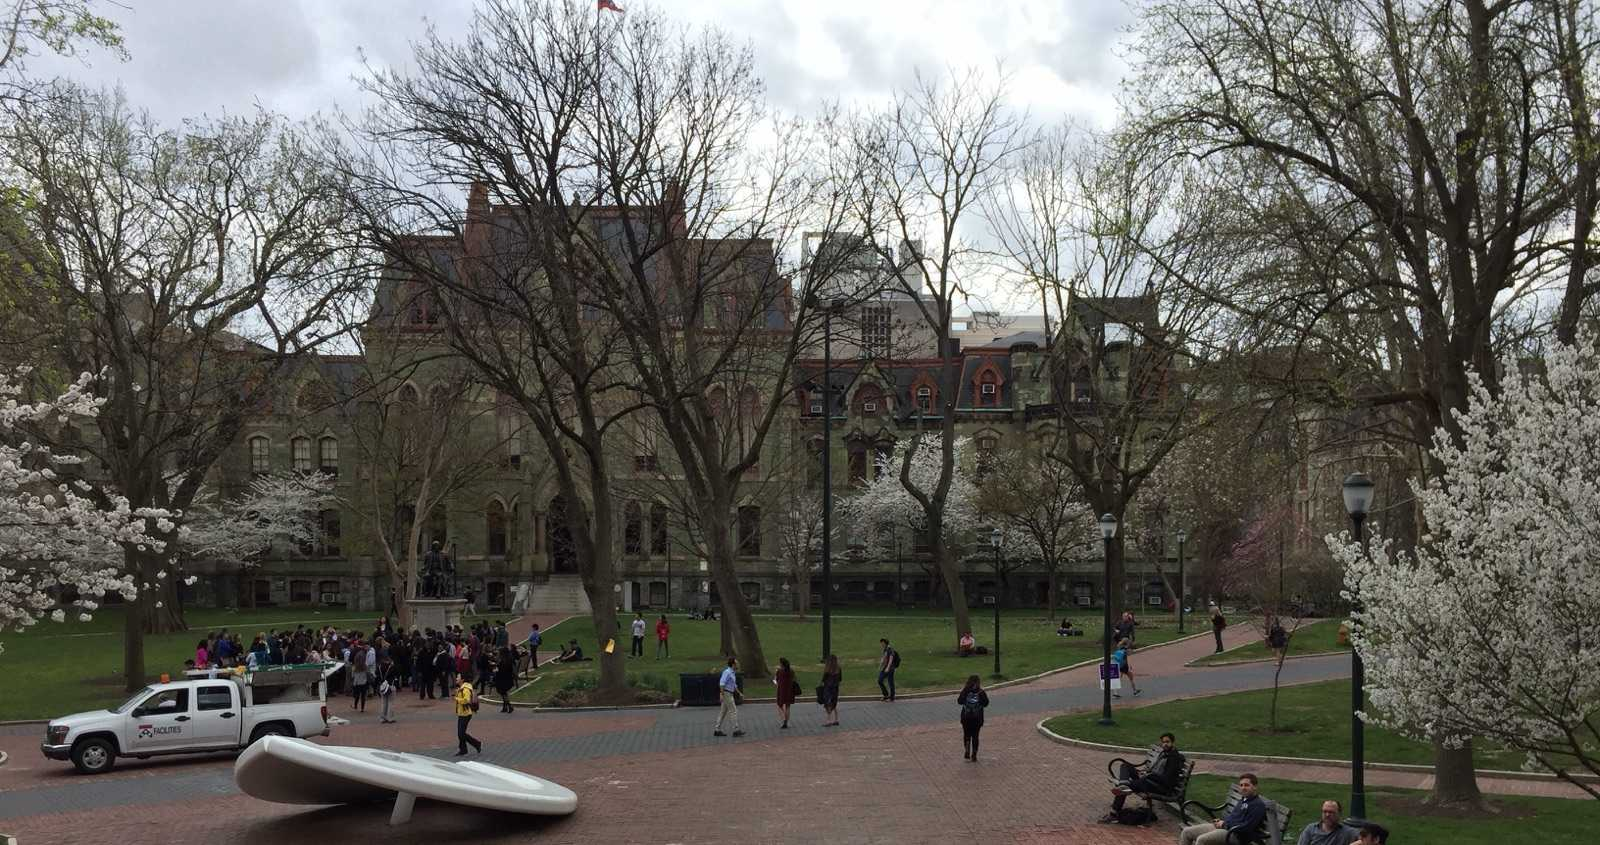 Barcenas took this picture during her visit to the University of Pennsylvania.